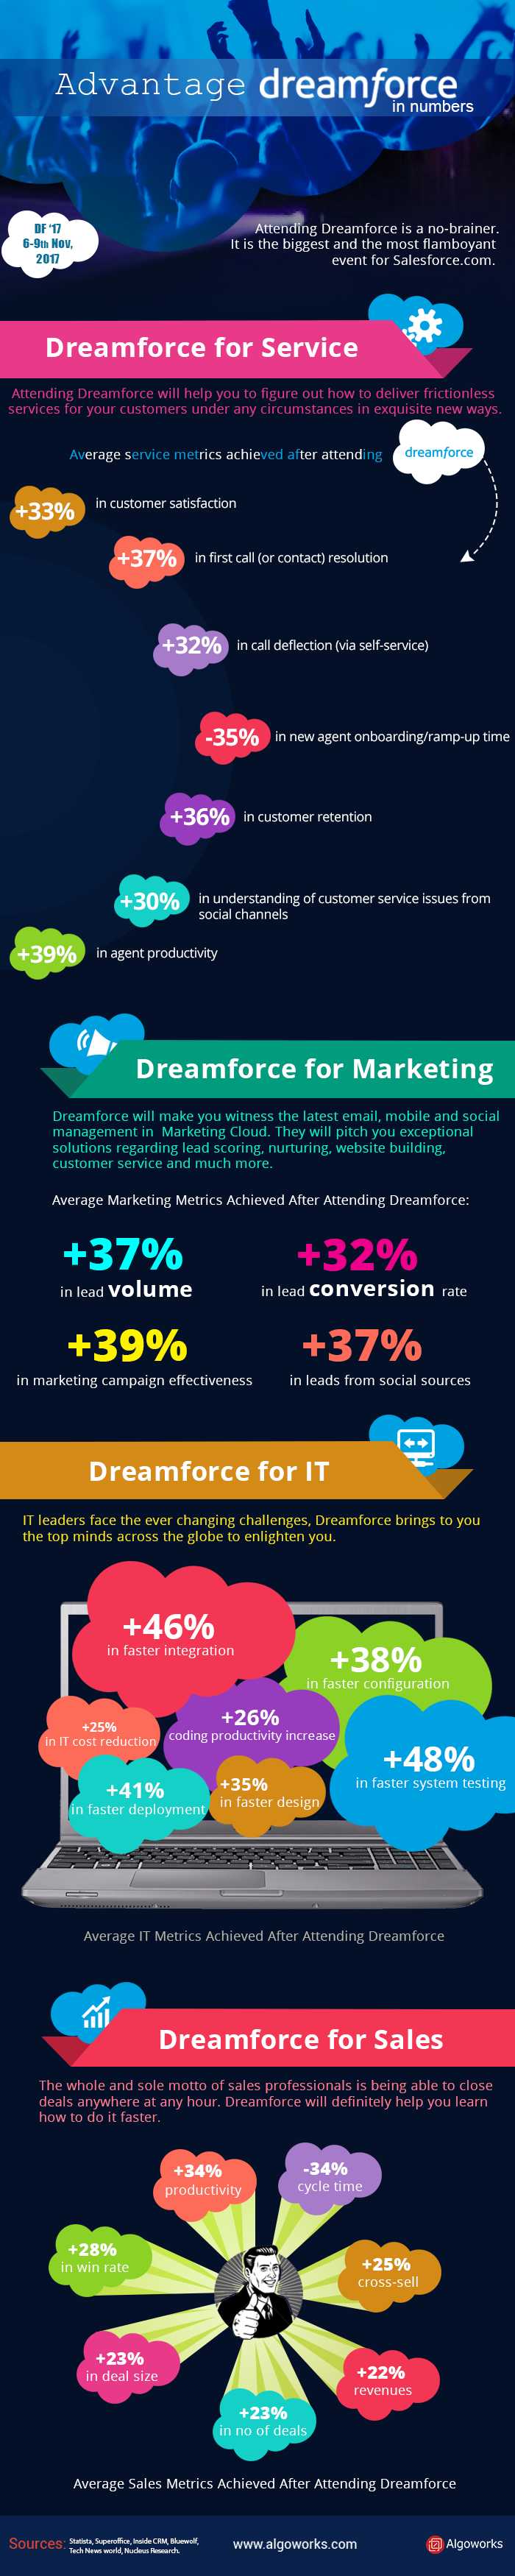 Advantage Dreamforce: In Numbers | An Infographic